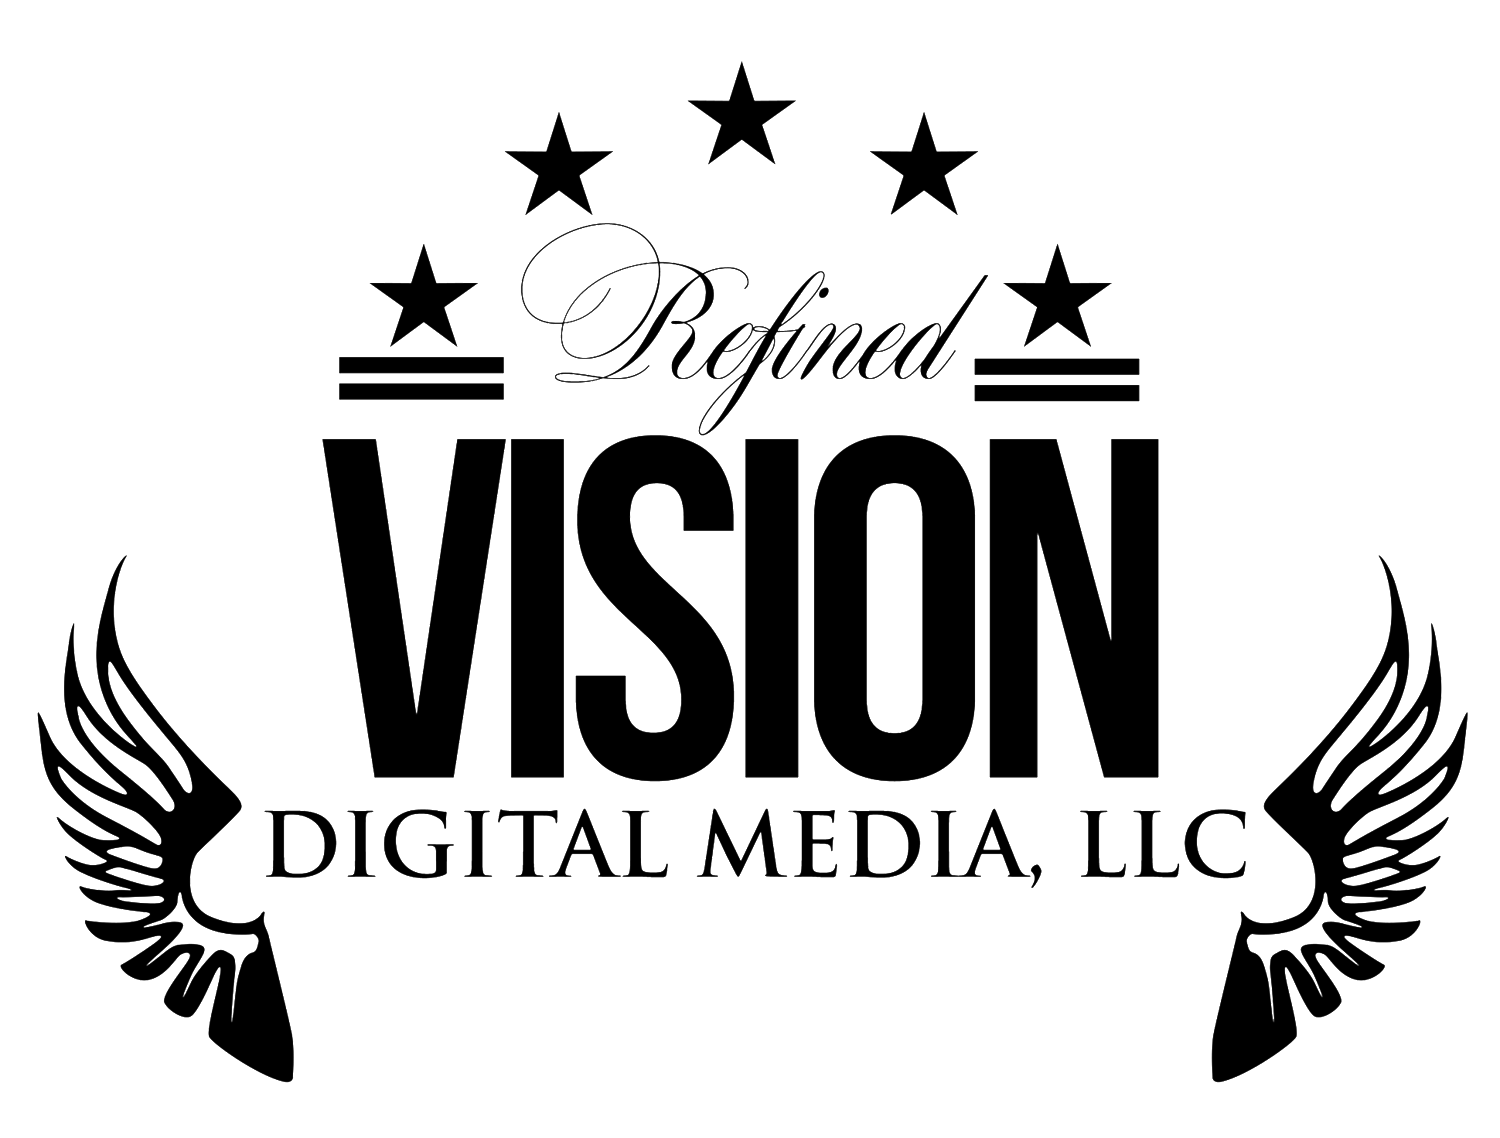 Refined Vision Digital Media, LLC